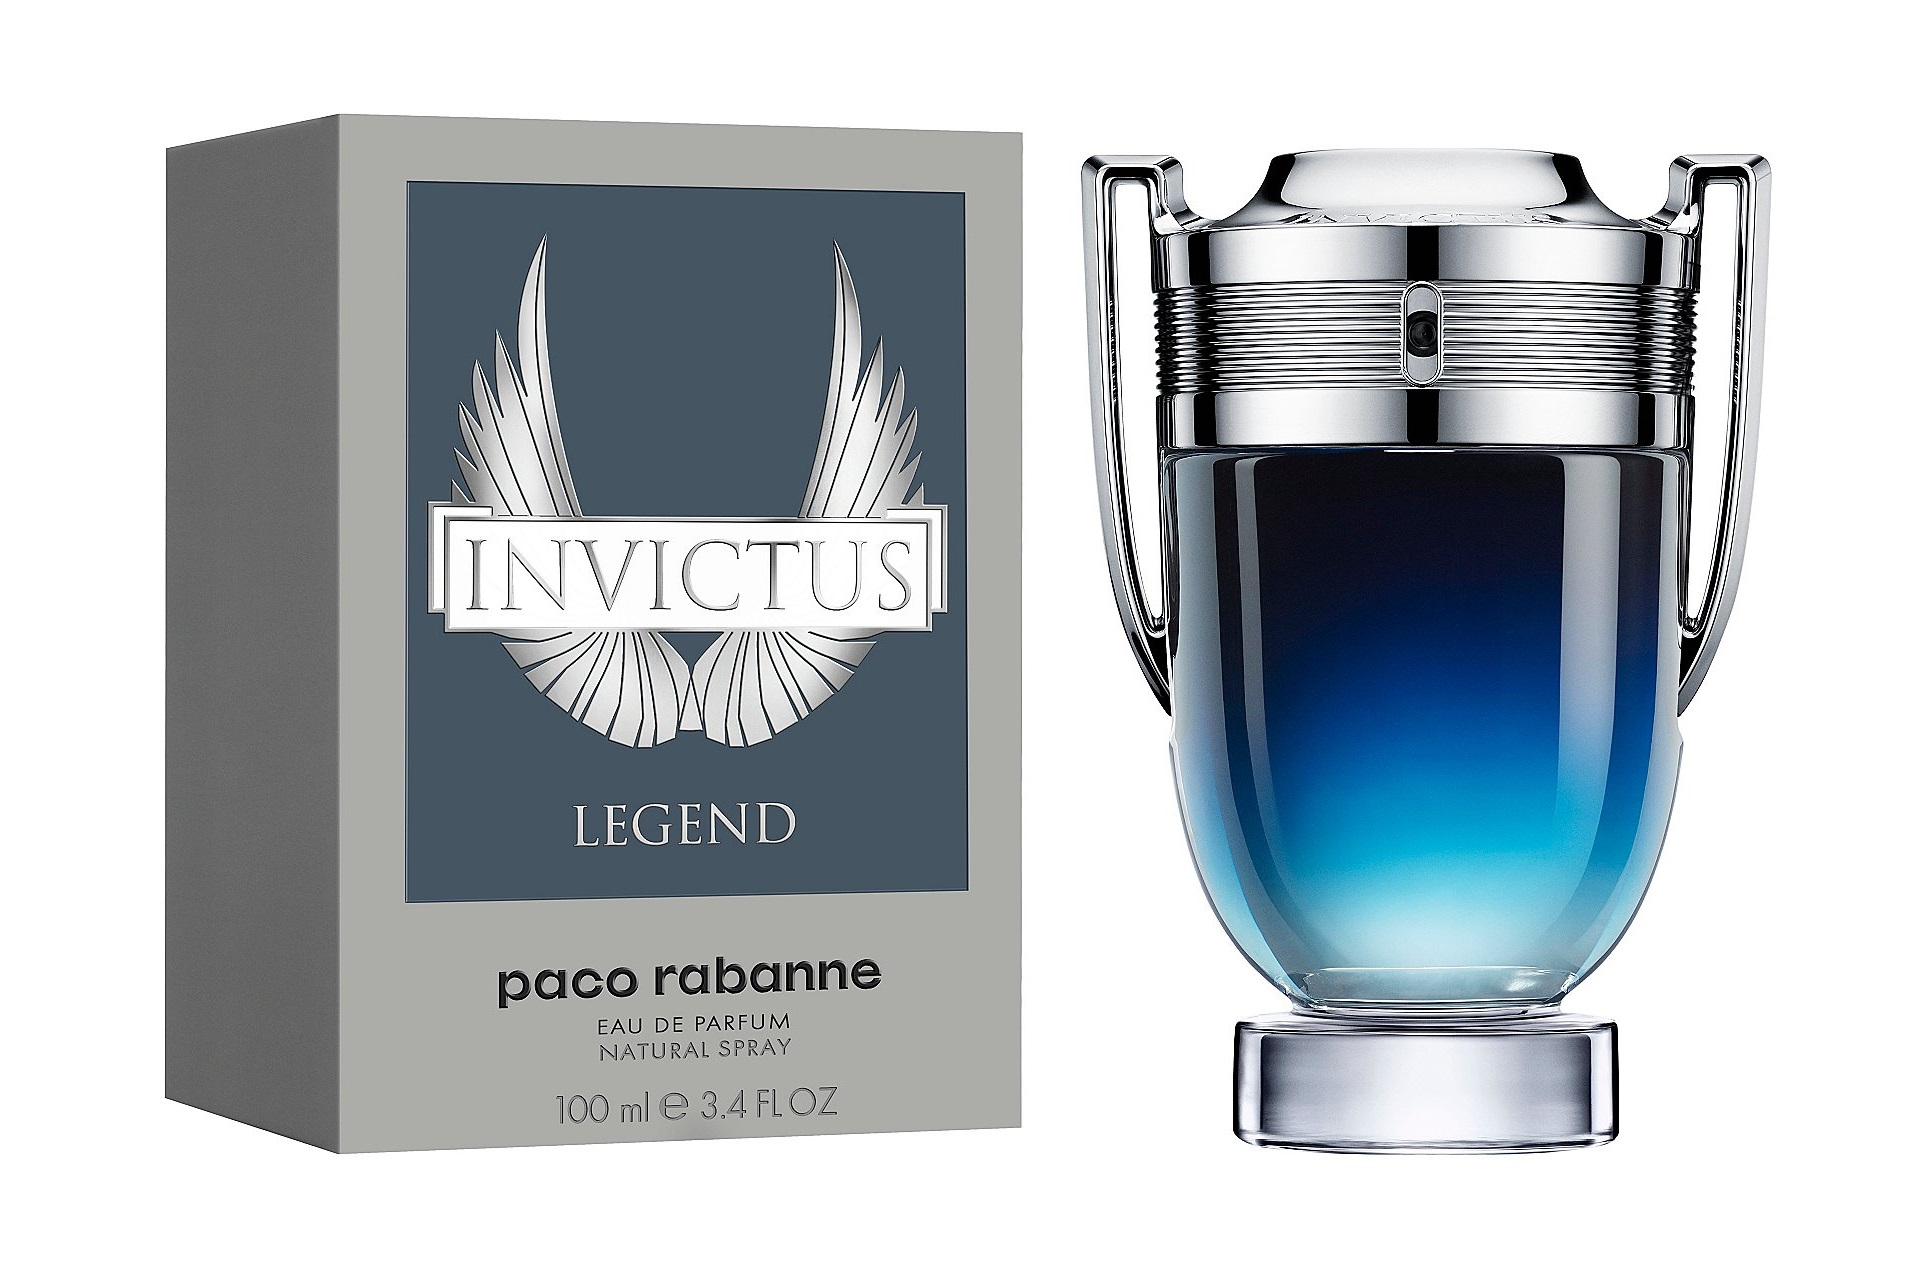 Invictus Legend 100 mL